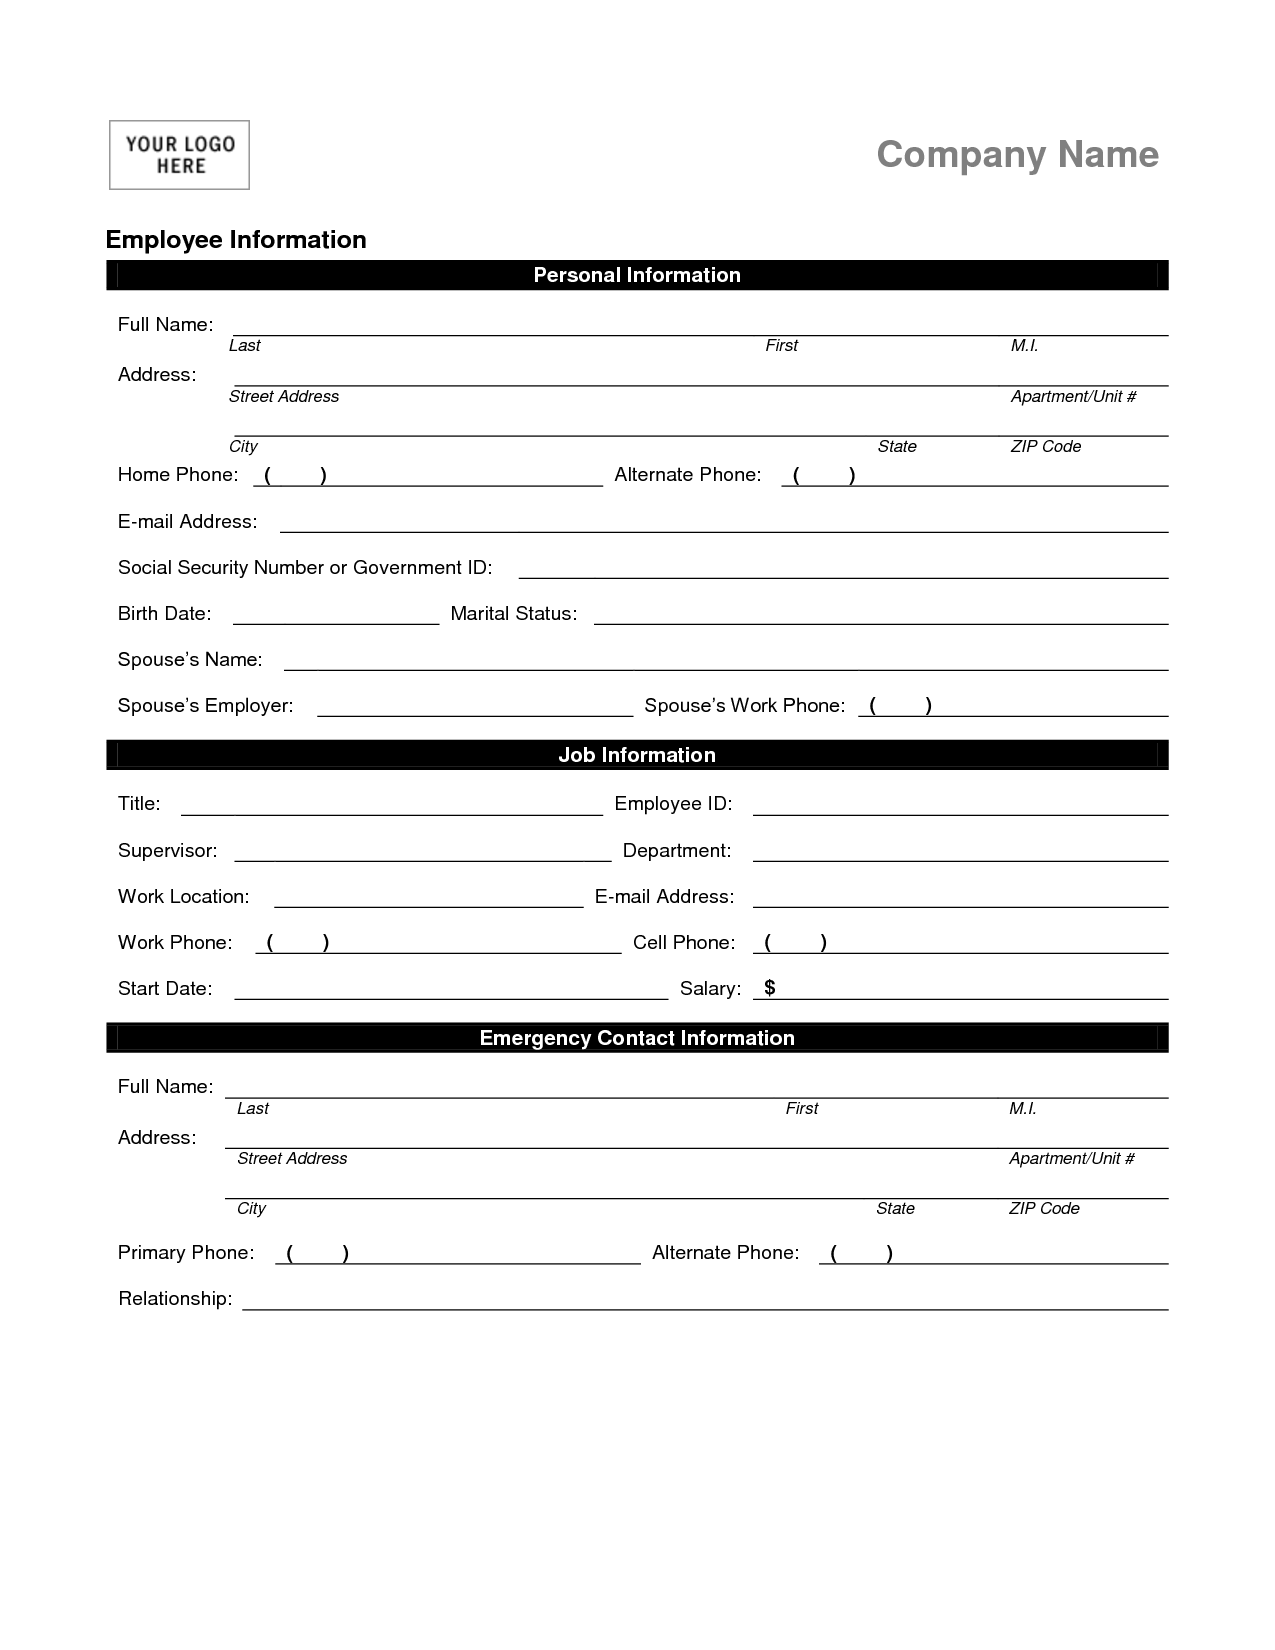 Employee Information Forms Templates